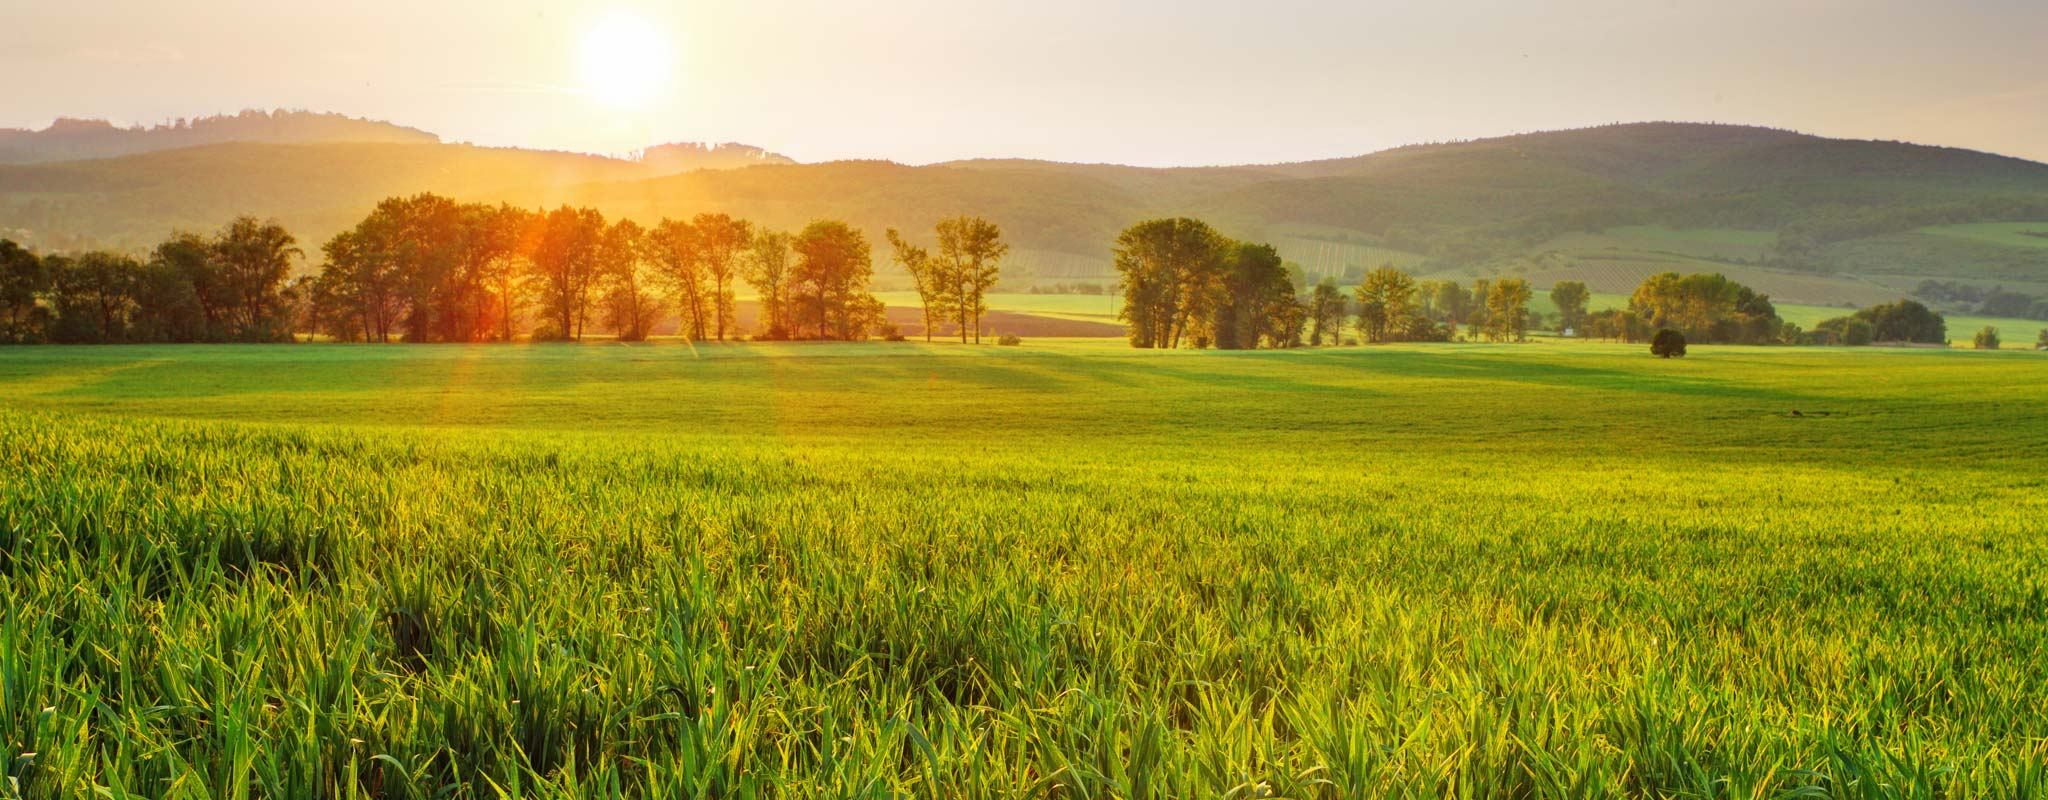 Sunrise on a lush green landscape.